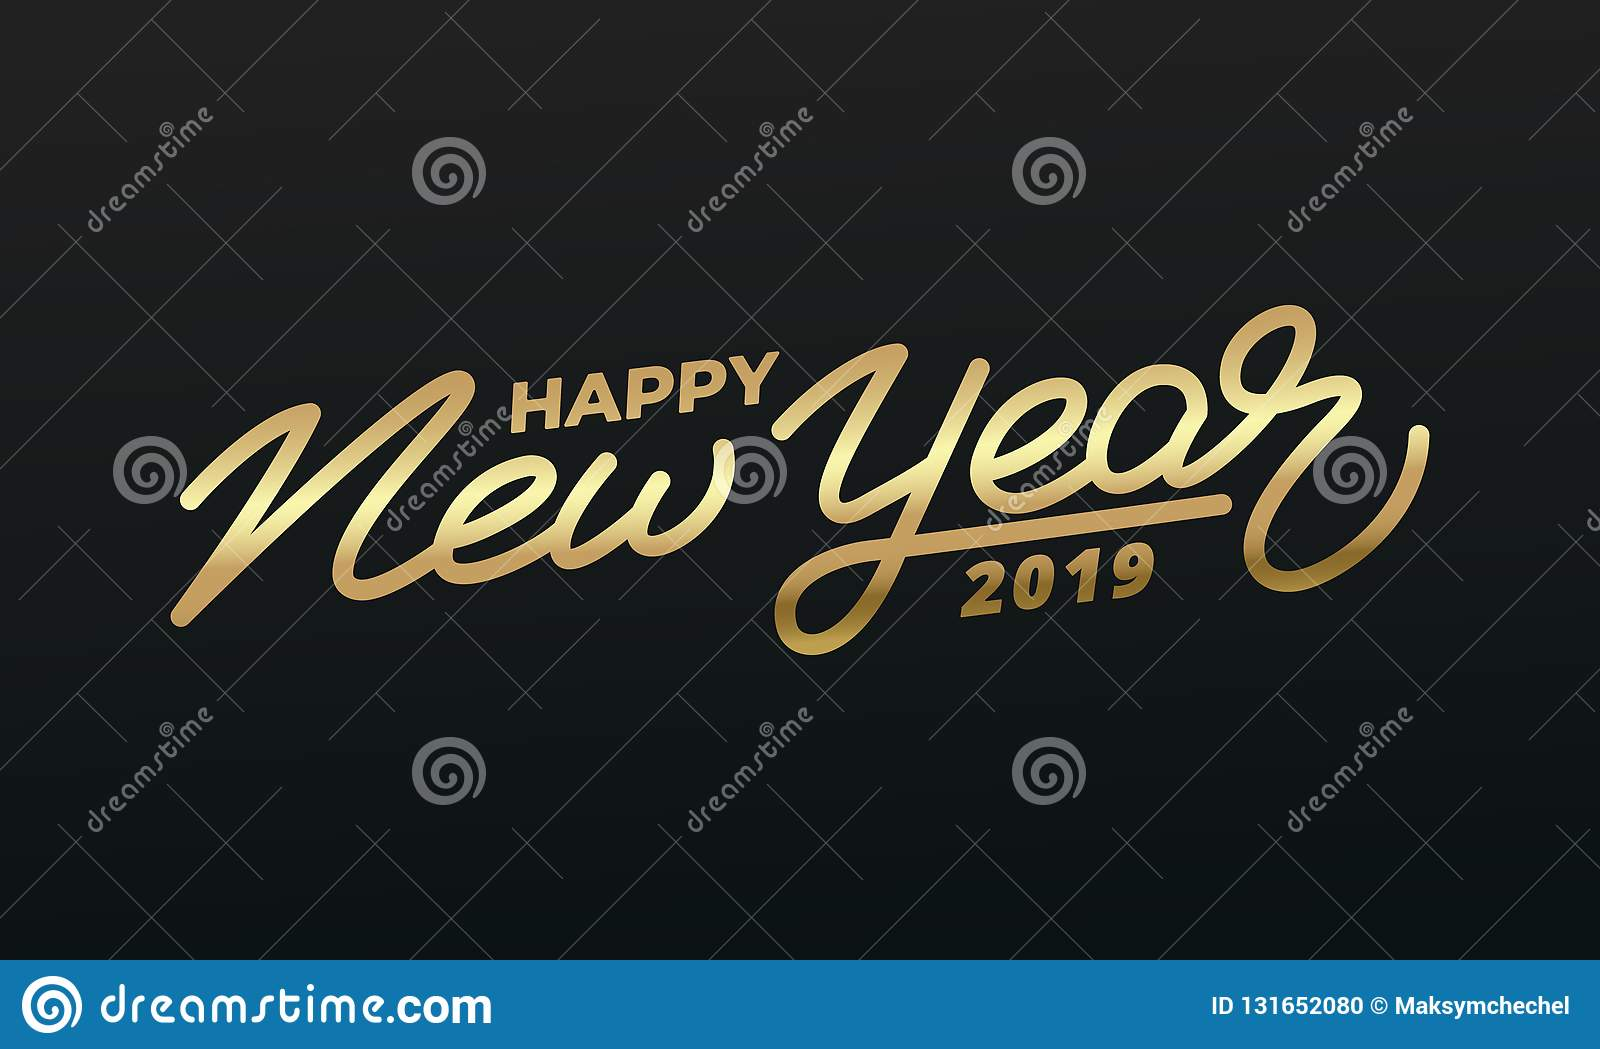 happy new year 2019 holiday illustration of gold lettering new year label